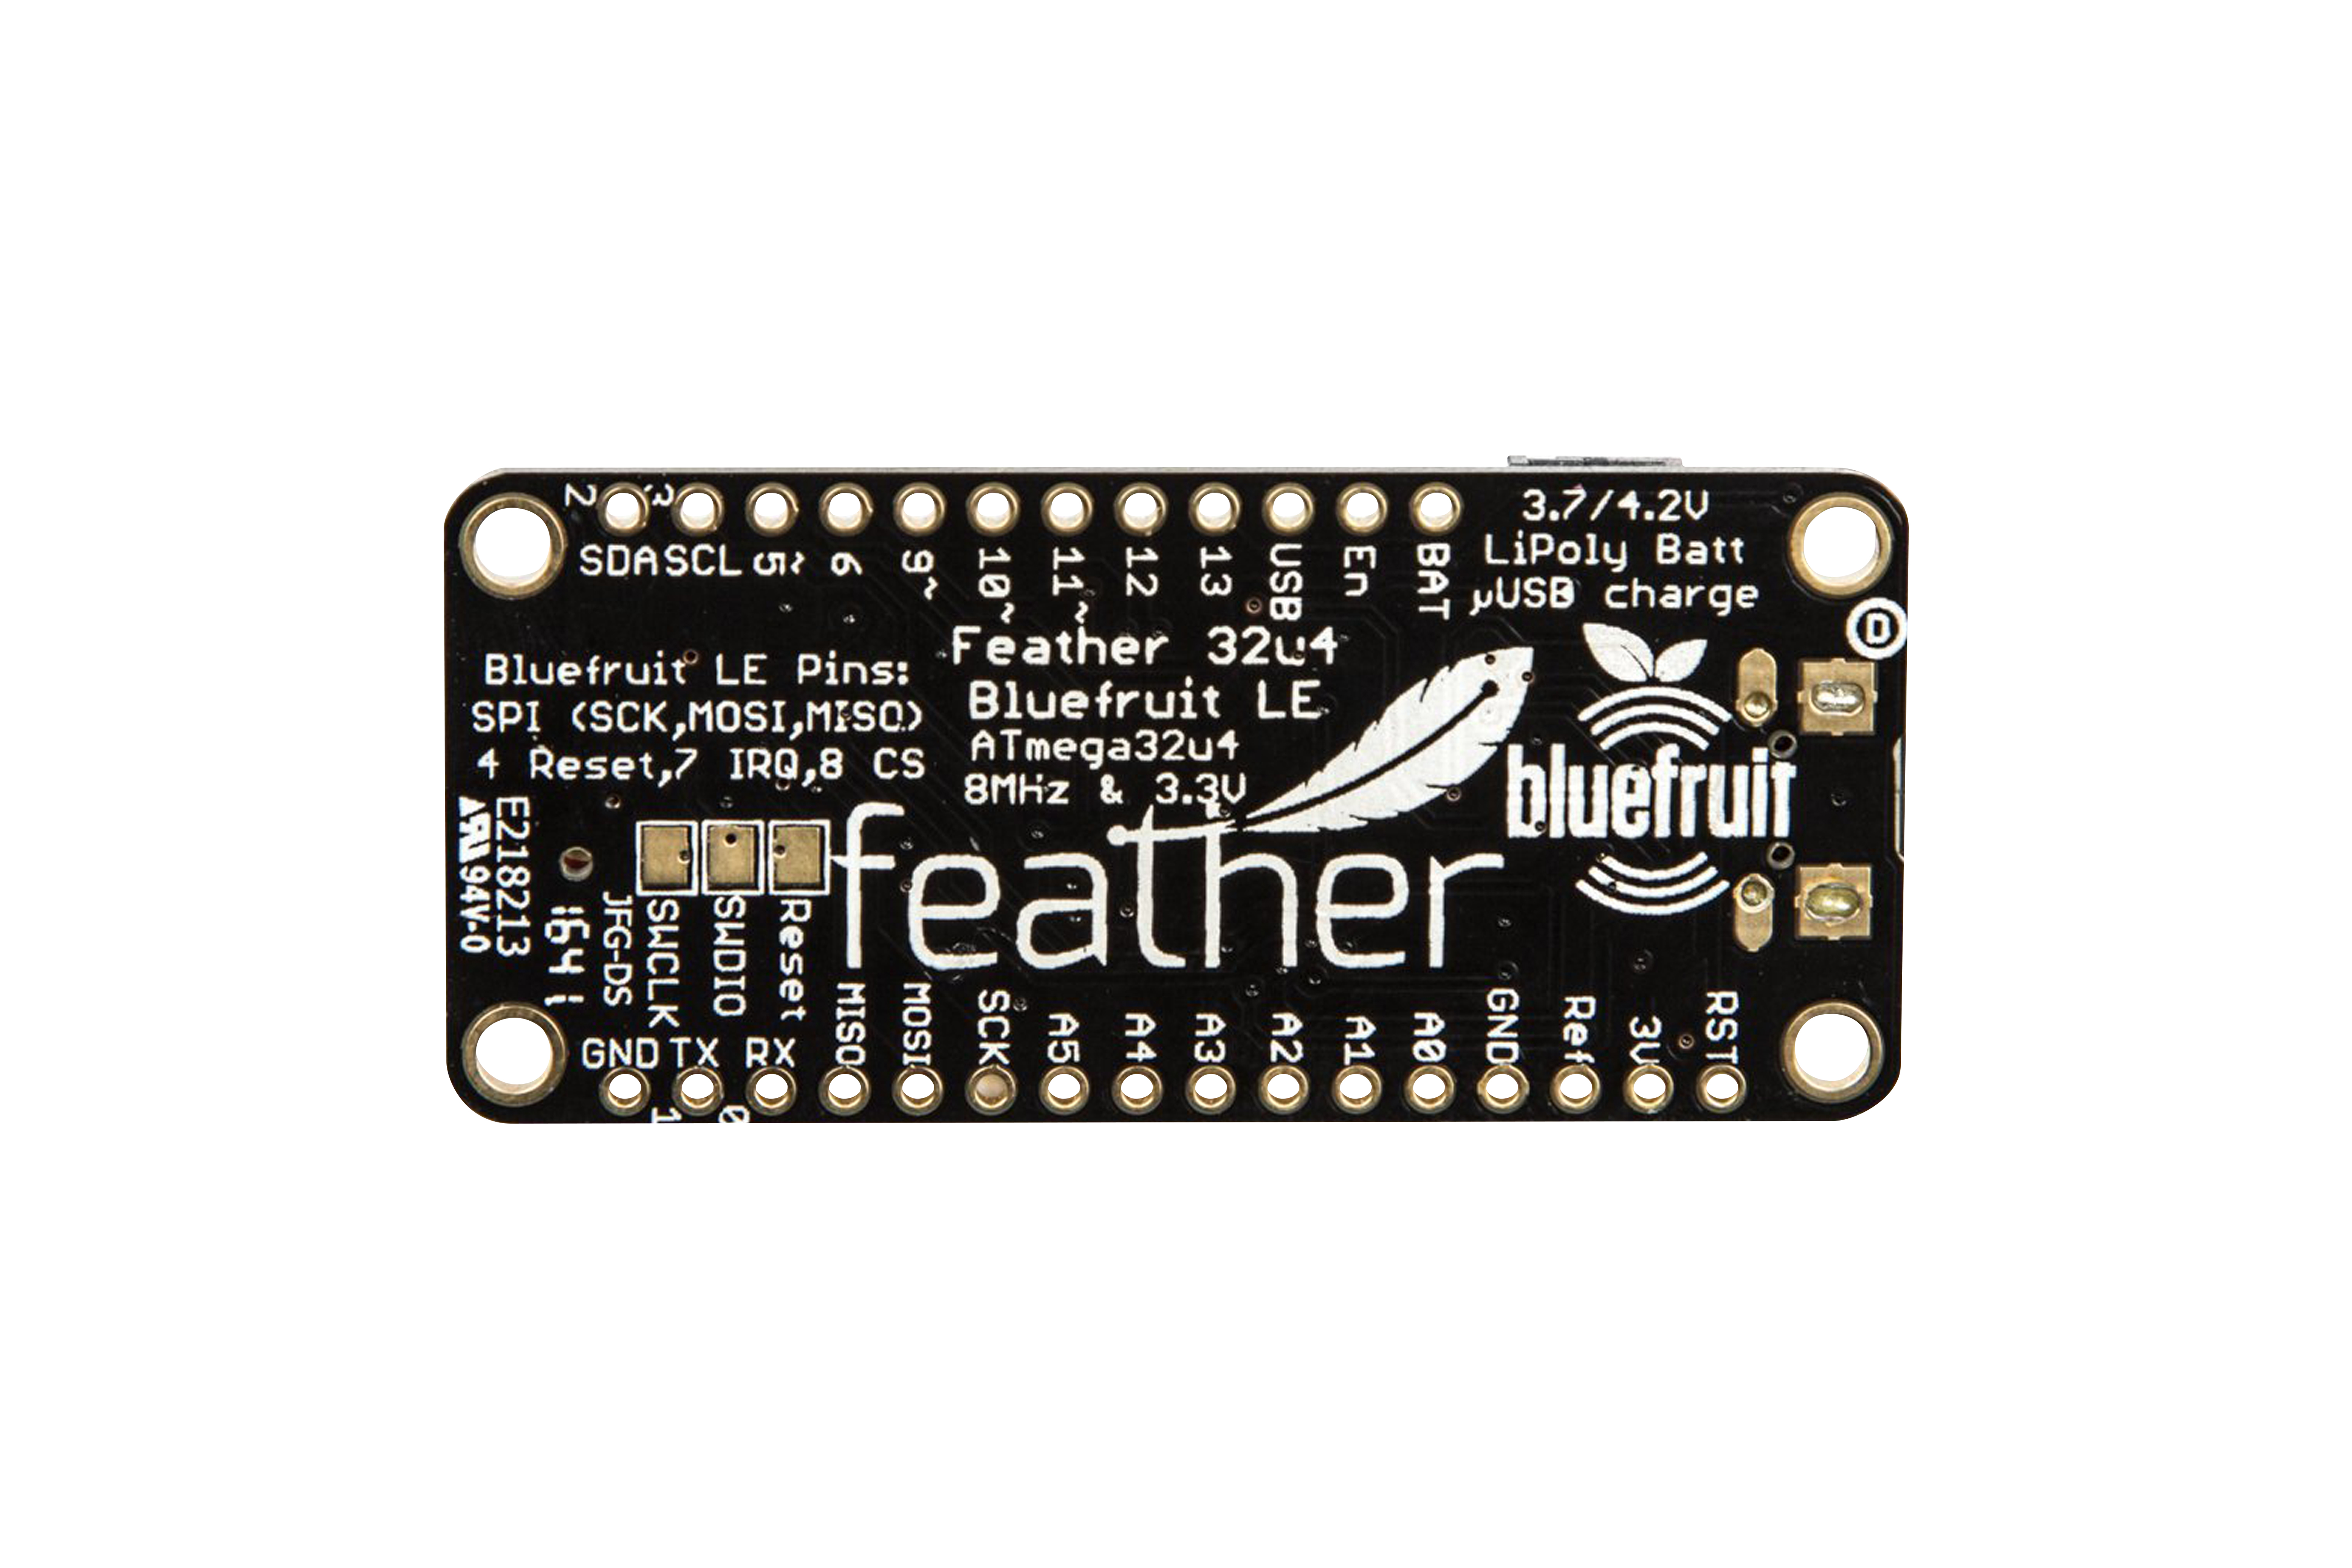 Adafruit Feather ATmega32u4 Bluefruit LE